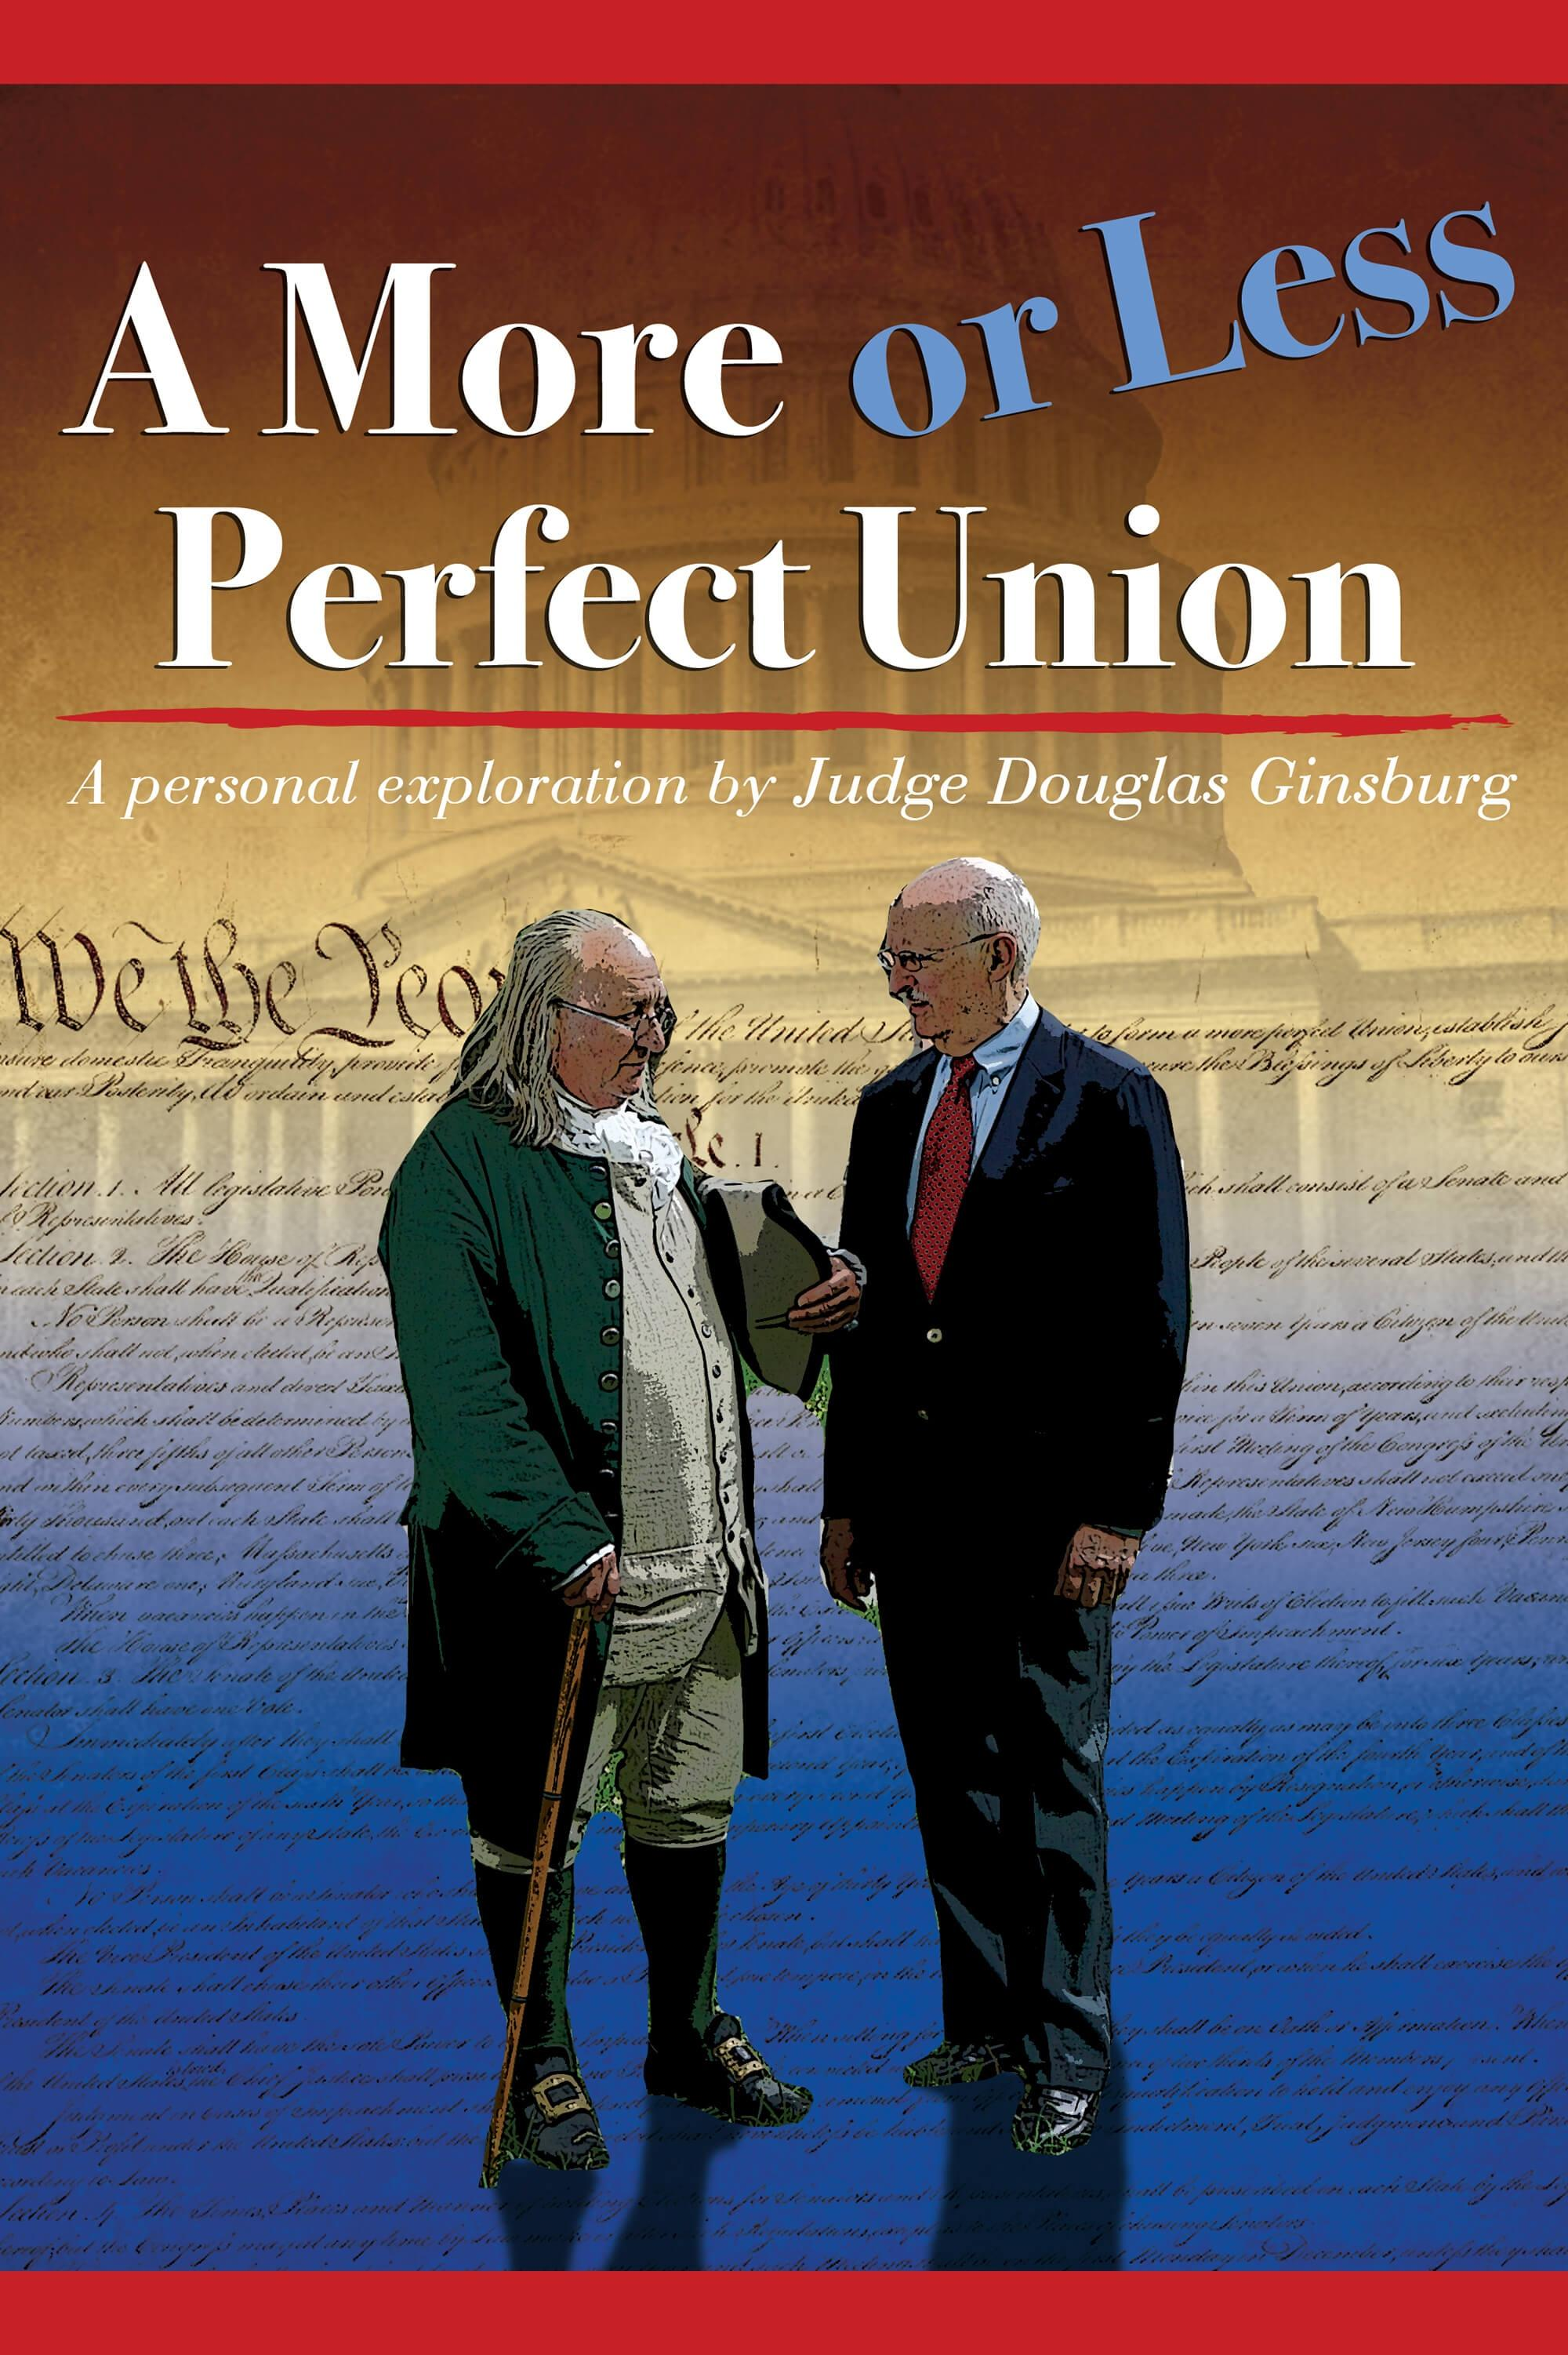 A More or Less Perfect Union, A Personal Exploration by Judge Douglas Ginsburg on FREECABLE TV